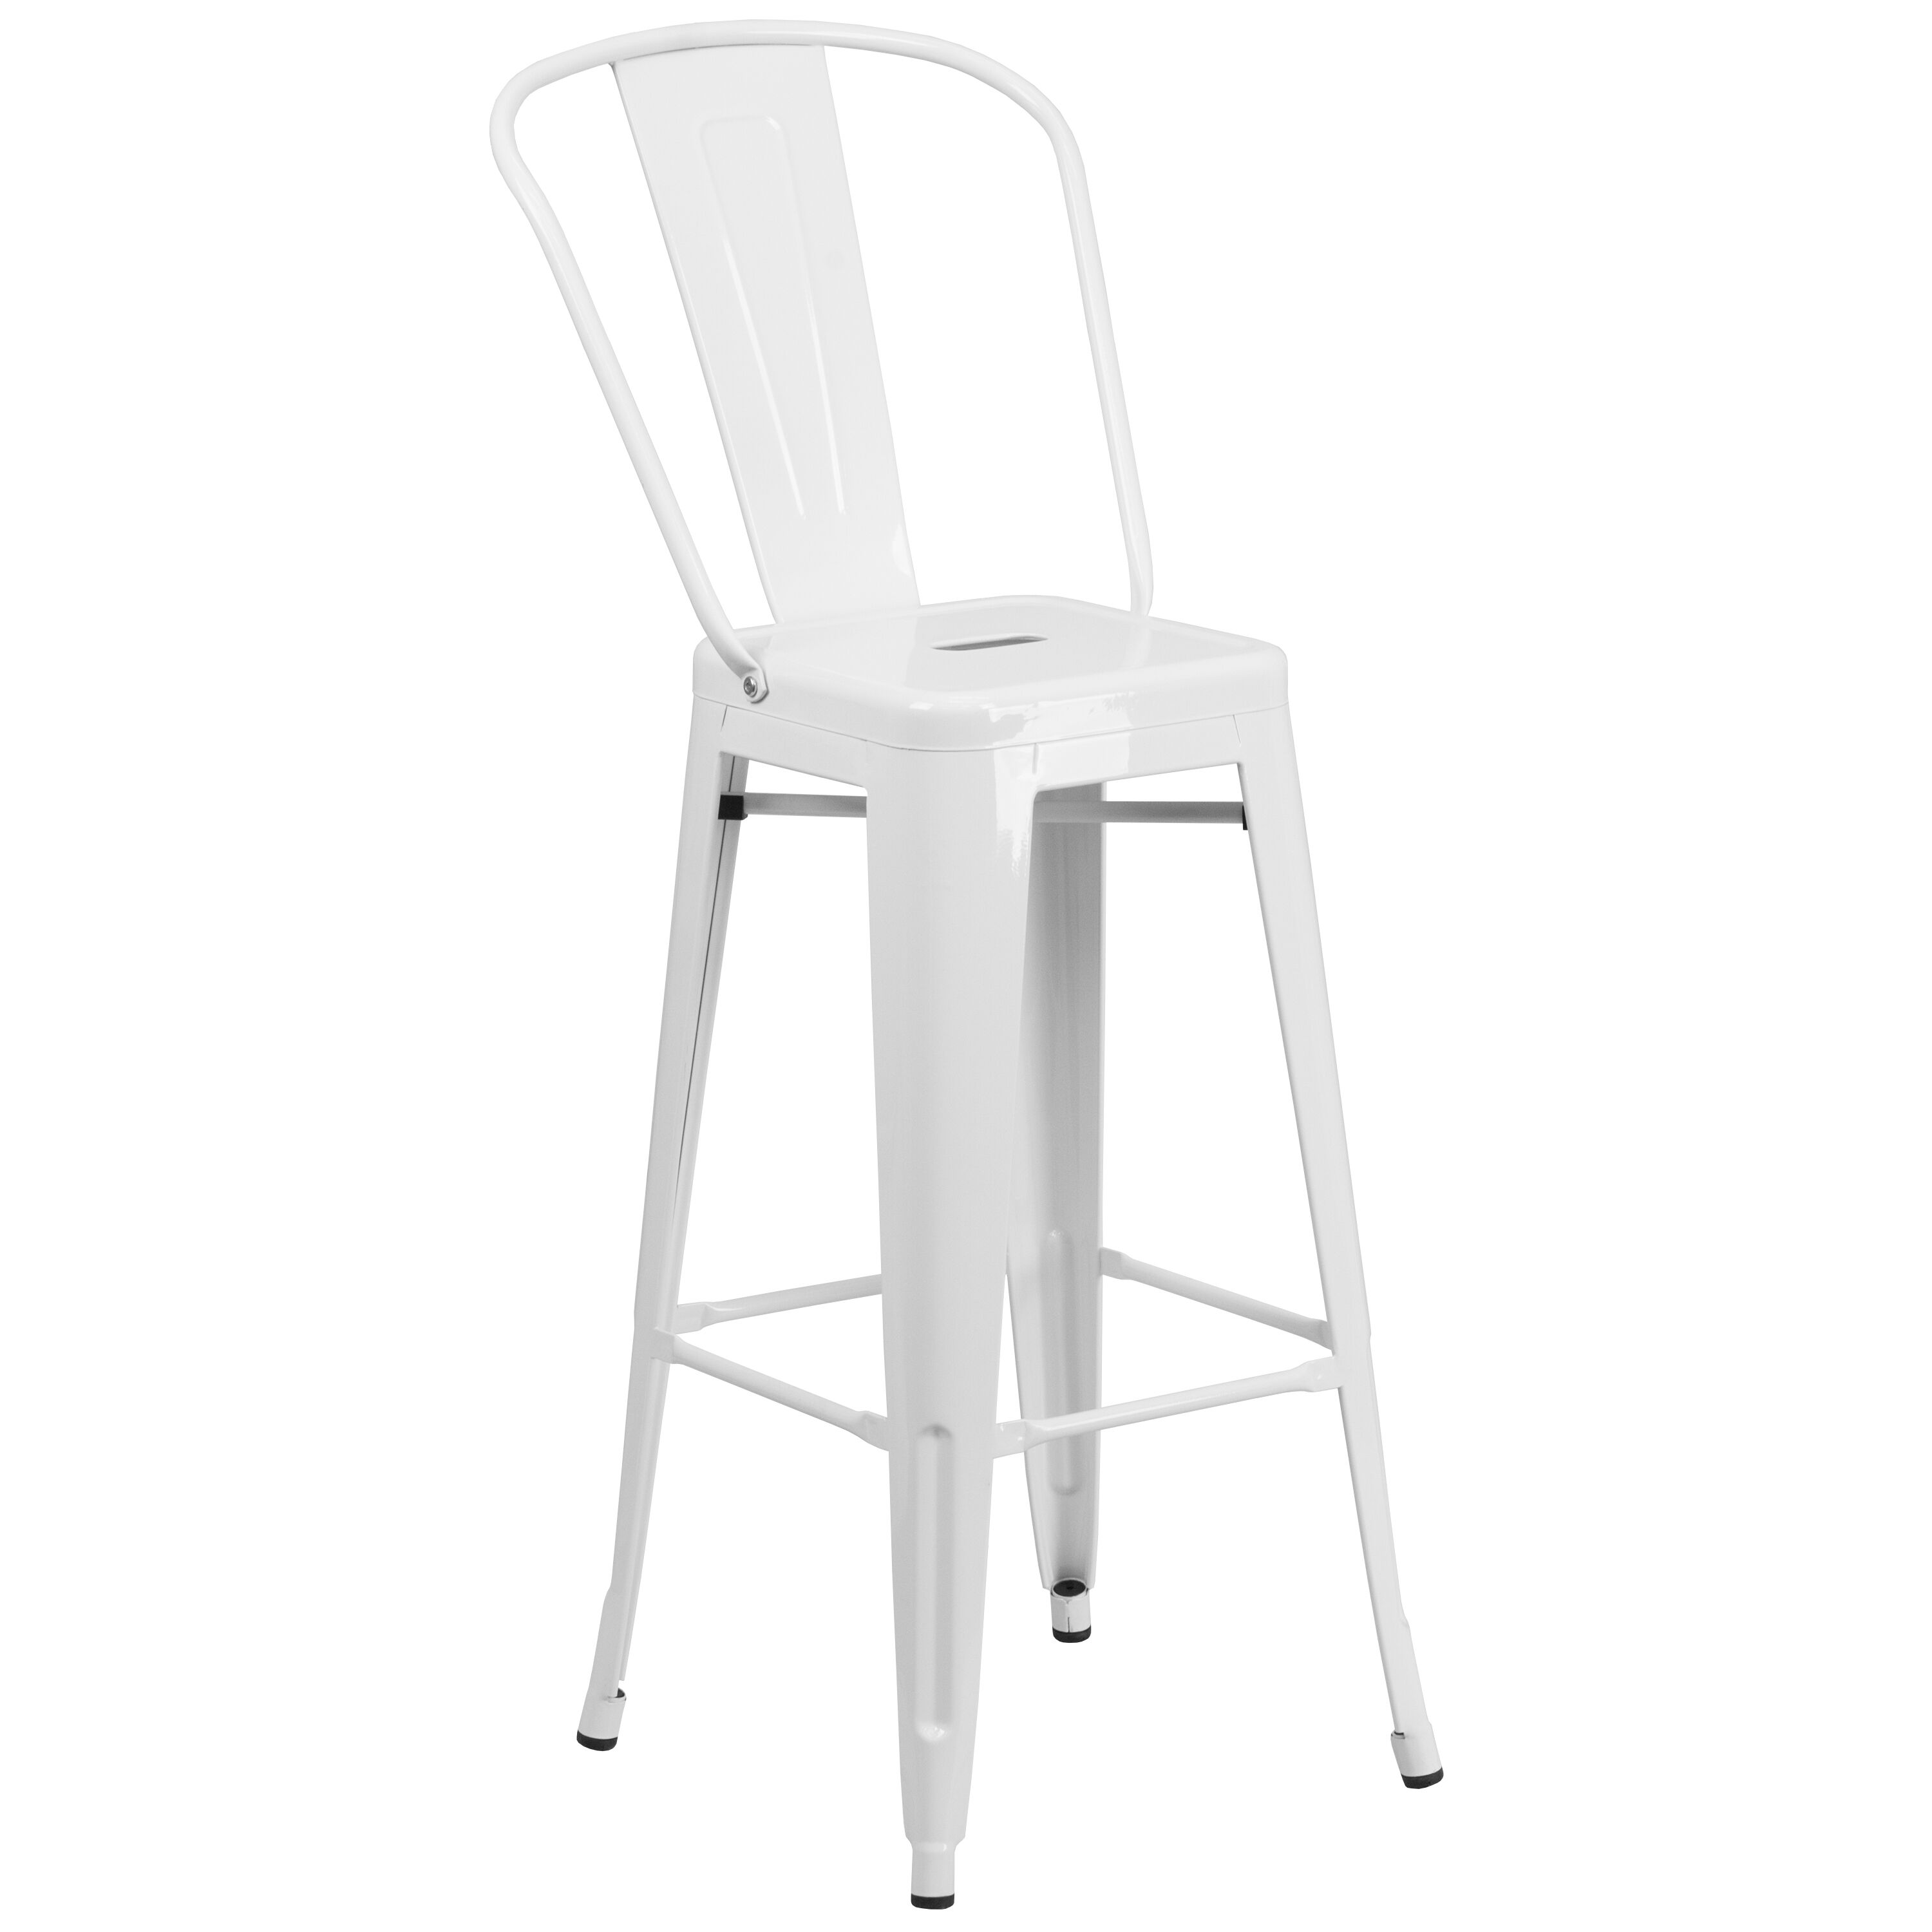 wh gunlocke chair chicco 360 high 30 quot white metal outdoor stool ch 31320 30gb gg